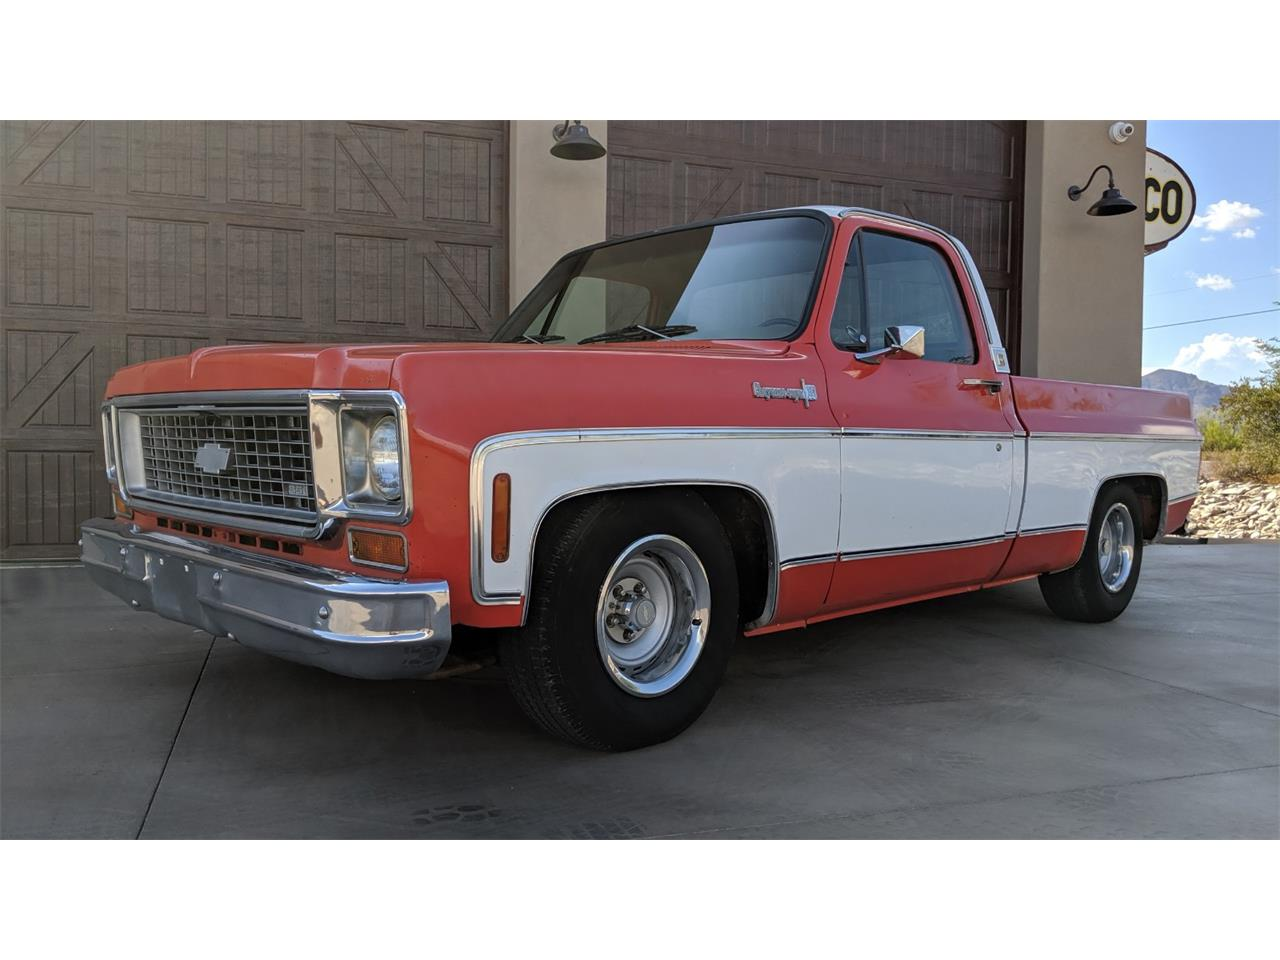 Large Picture of 1974 Chevrolet C10 - $9,500.00 Offered by a Private Seller - QN2L